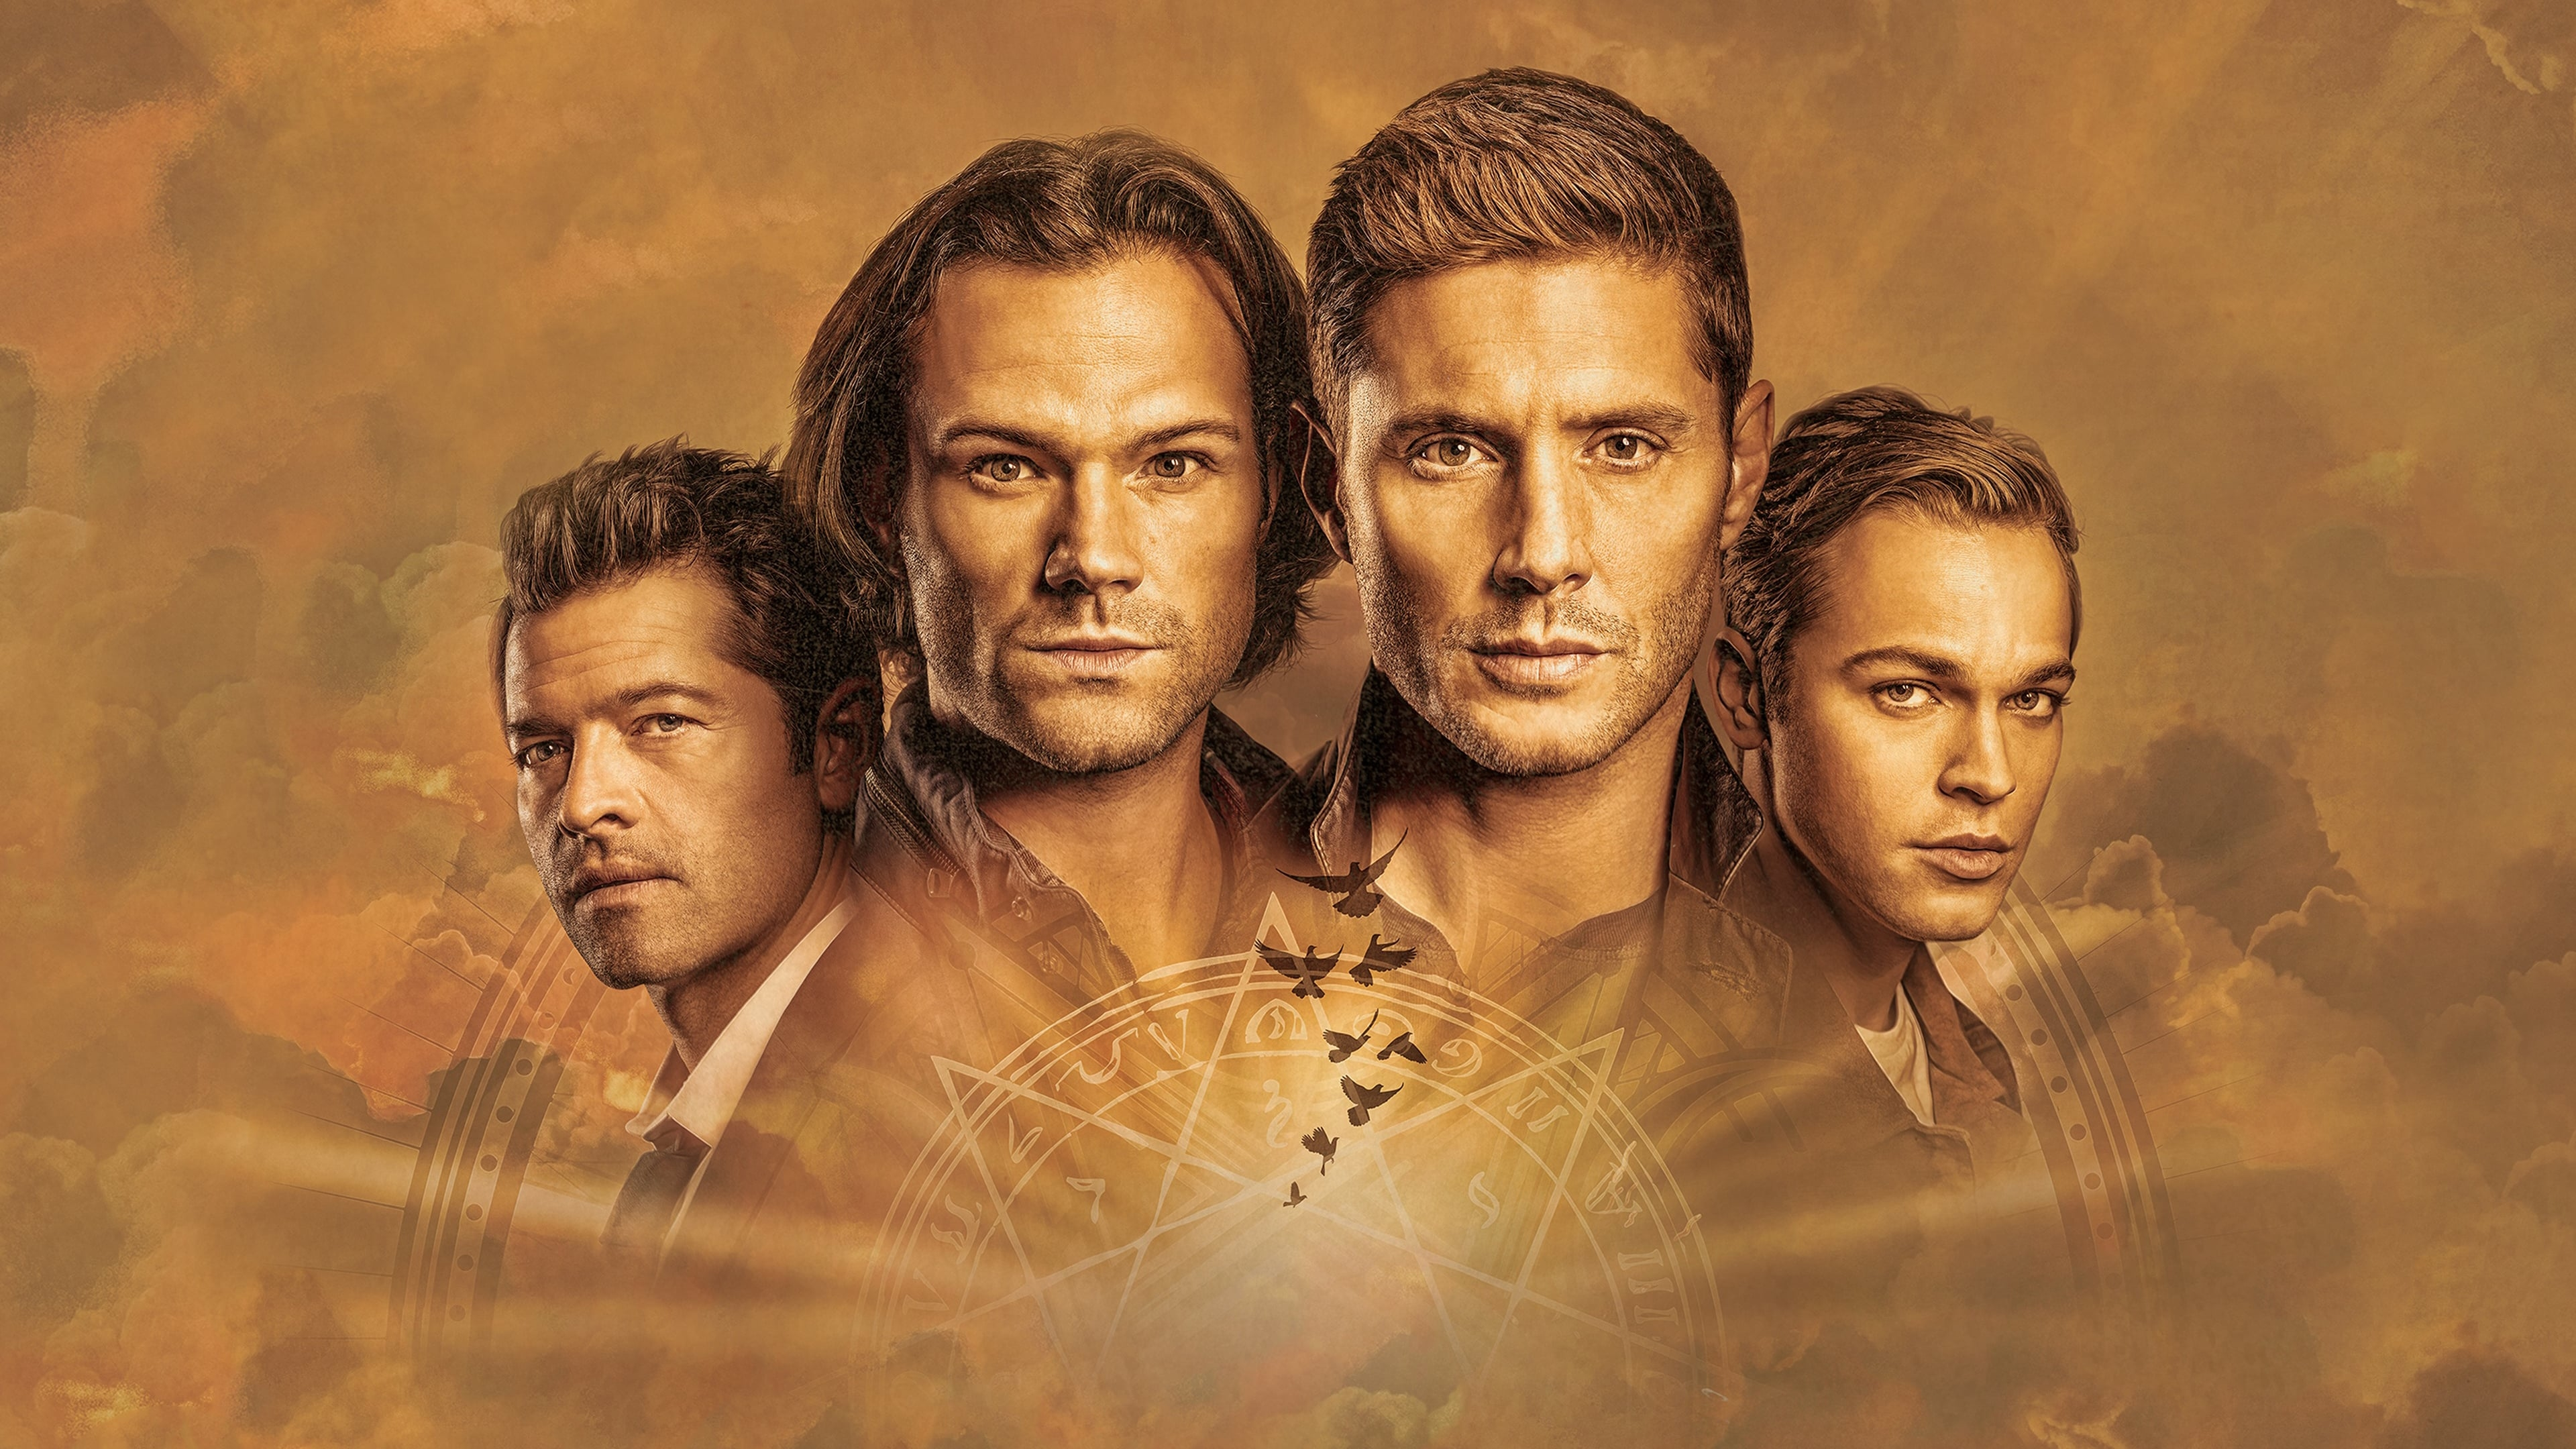 1920x1080 Supernatural Tv Show 2020 Laptop Full Hd 1080p Hd 4k Wallpapers Images Backgrounds Photos And Pictures